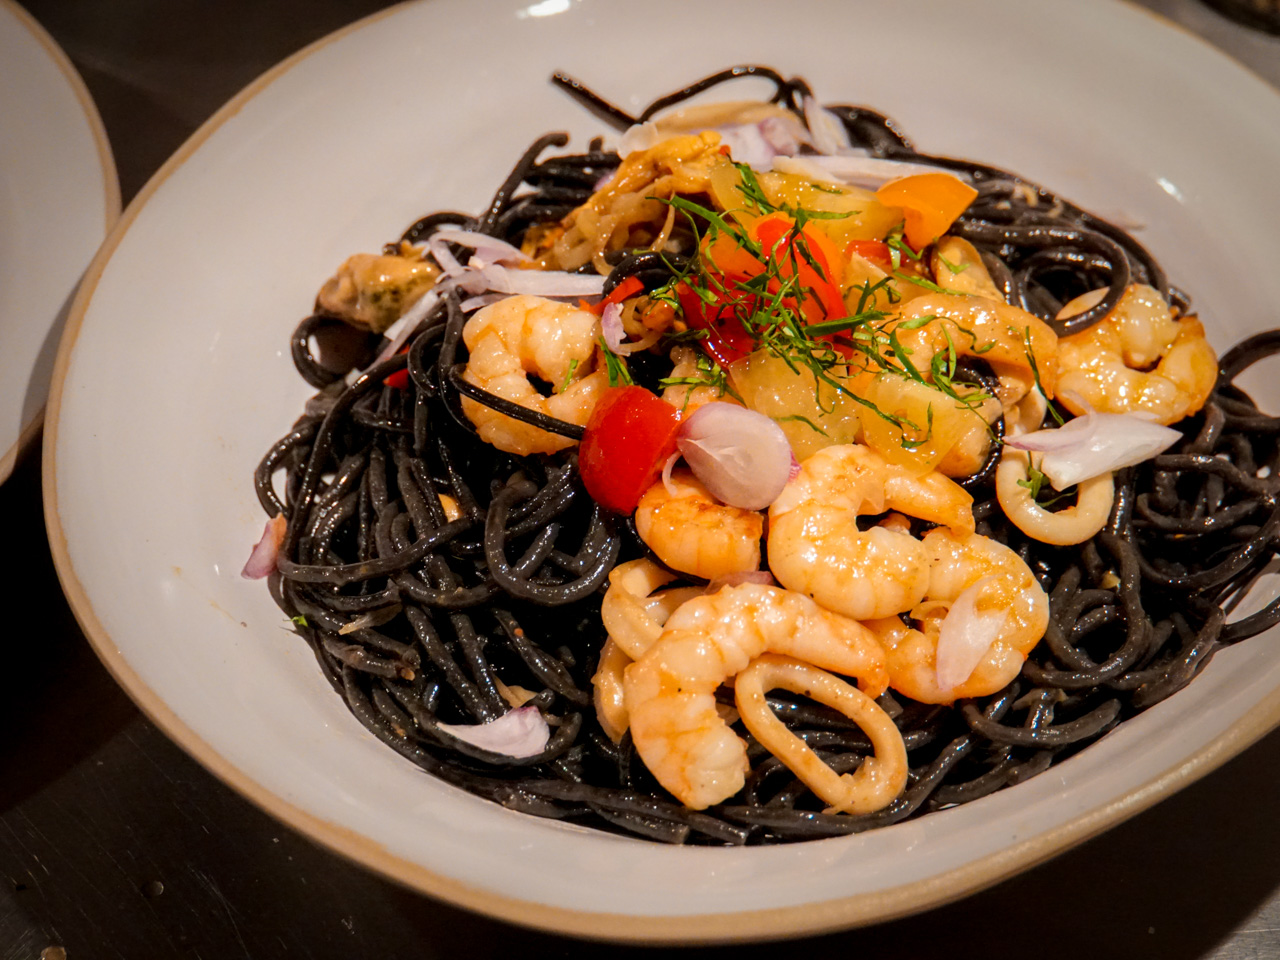 Squid-ink spaghetti with seafood cooked with lemongrass